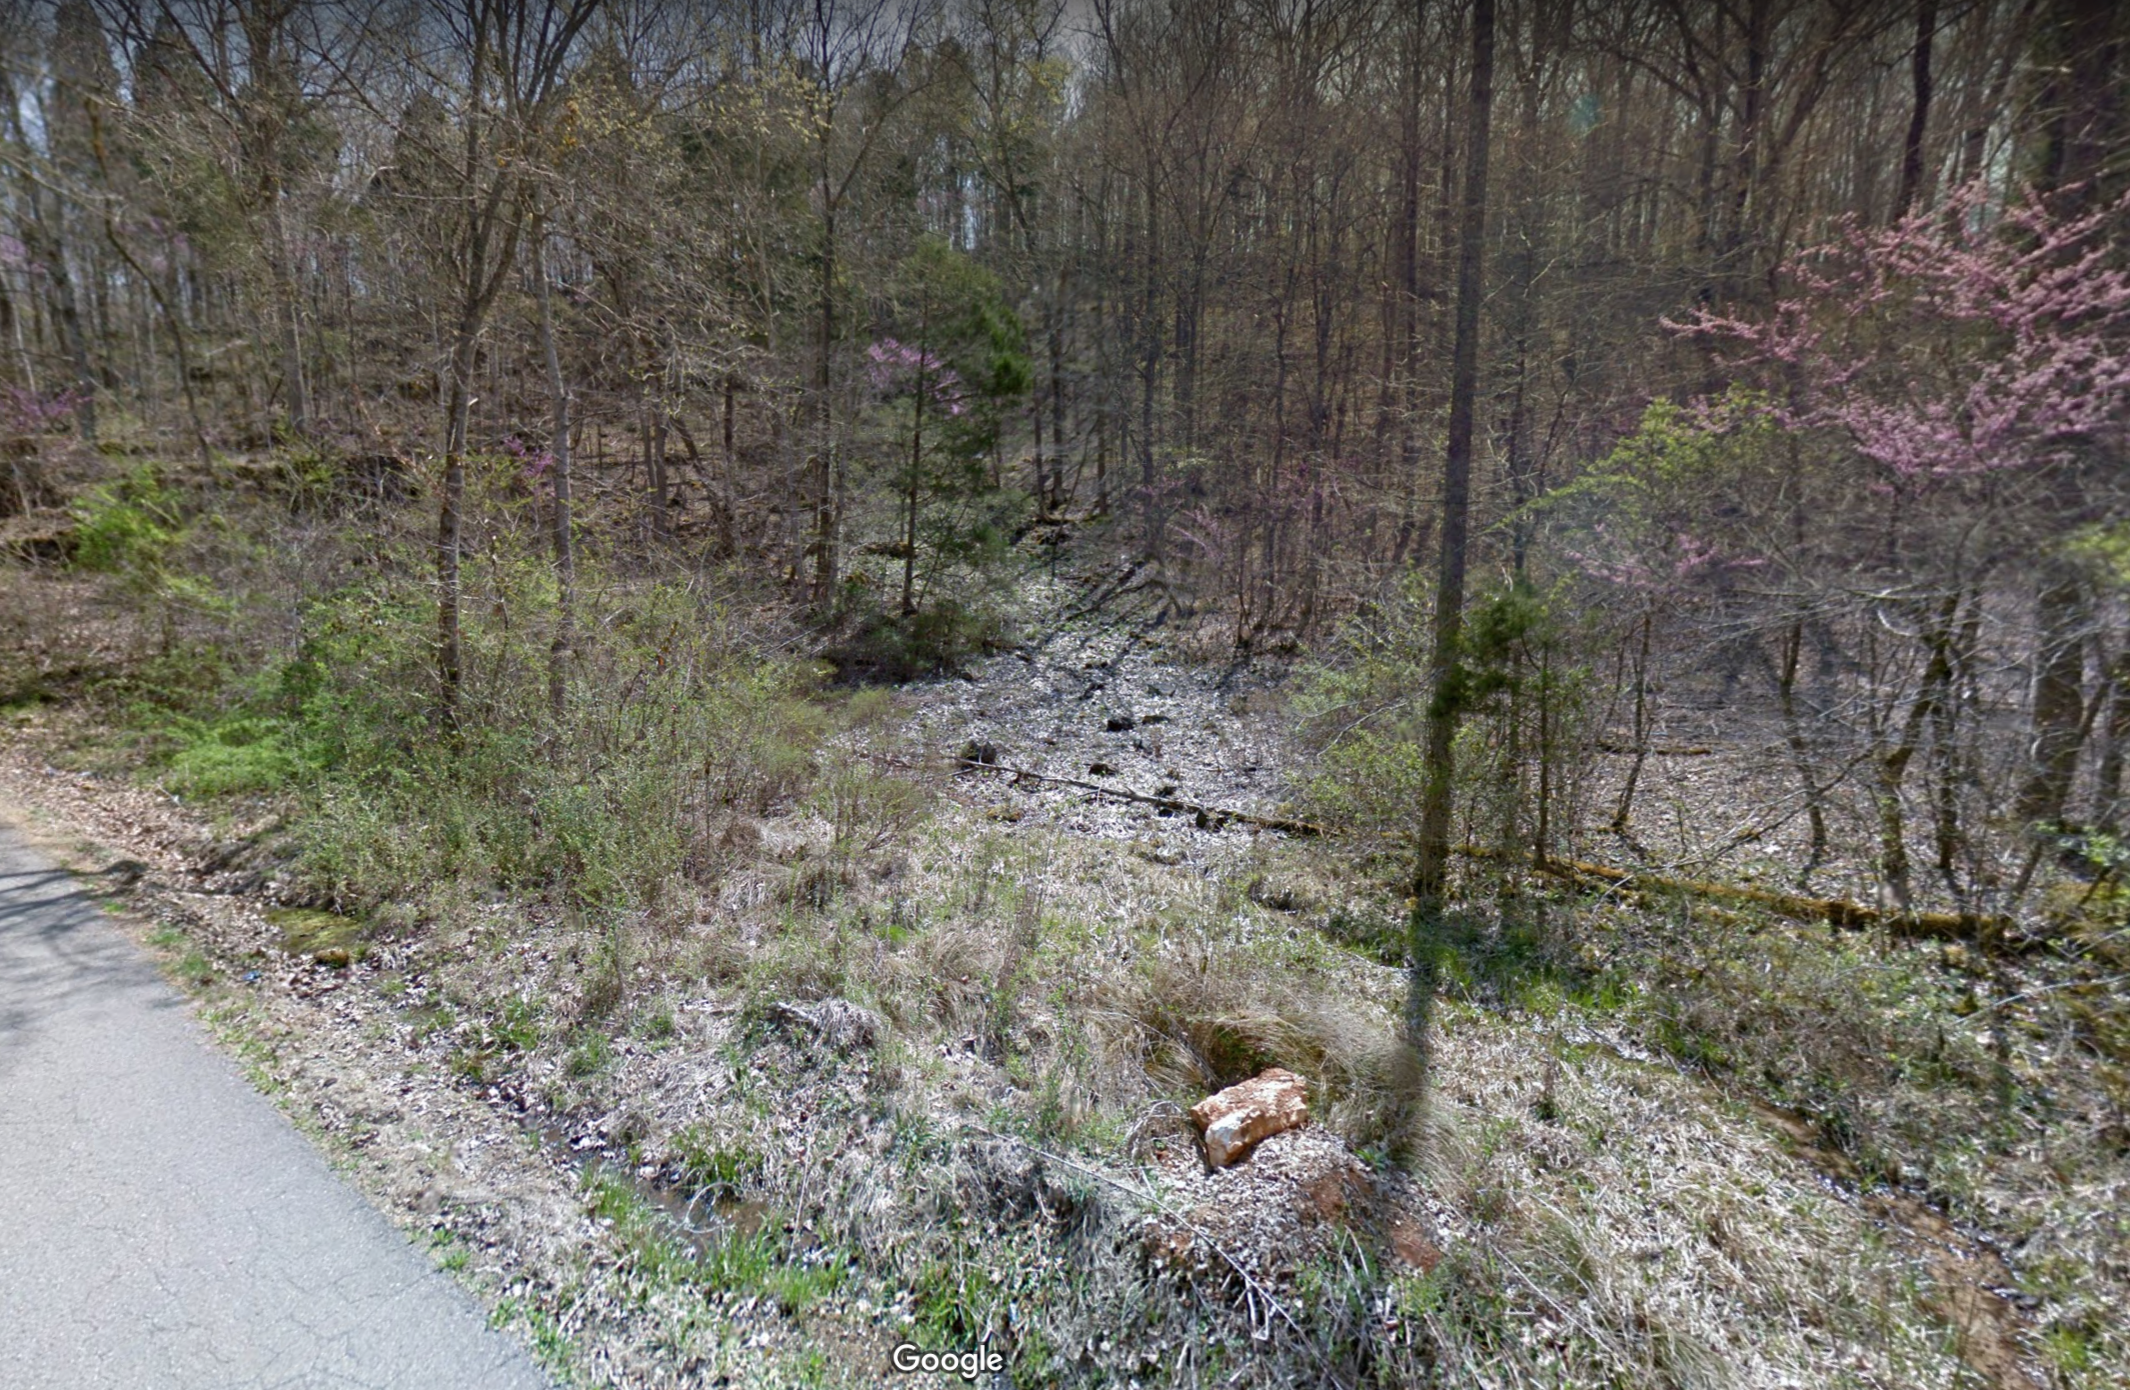 """Google Earth street view image of the initial seep discovered by Aaron Floden in Campbell Co., Tennessee. He found this seep first by using Google Earth street view to do a """"virtual backroad survey."""" Credit: Google Earth."""